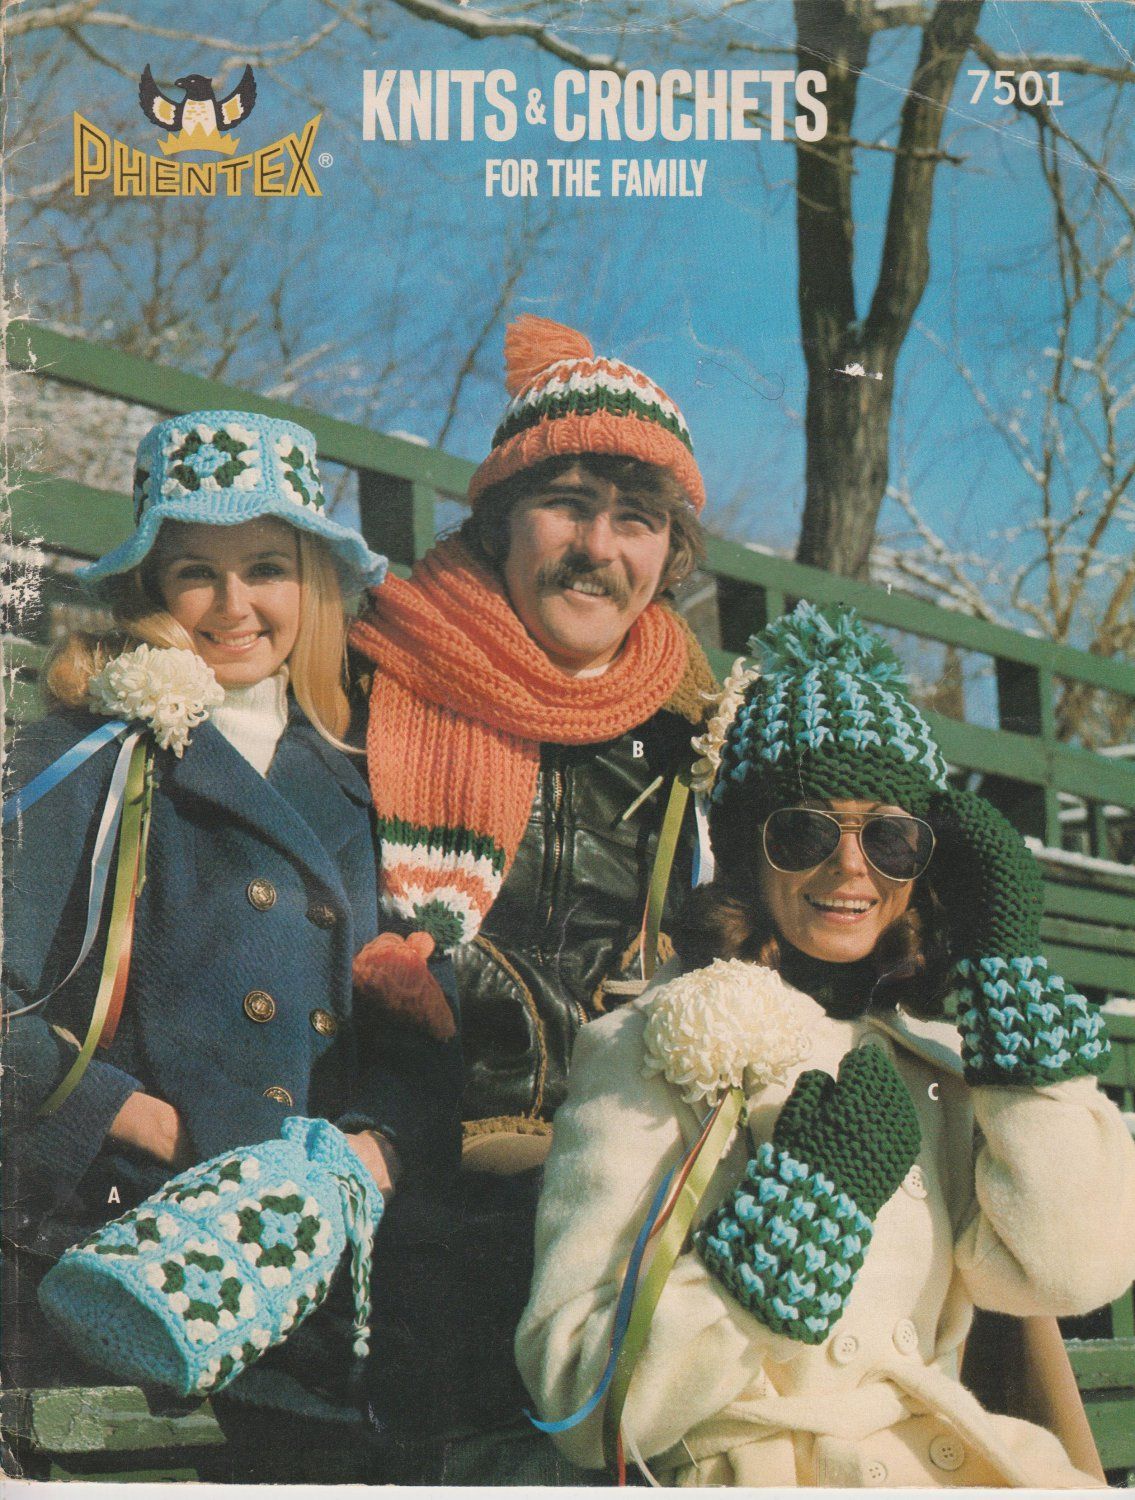 Phentex pattern #7501 Knits & crochets for the family